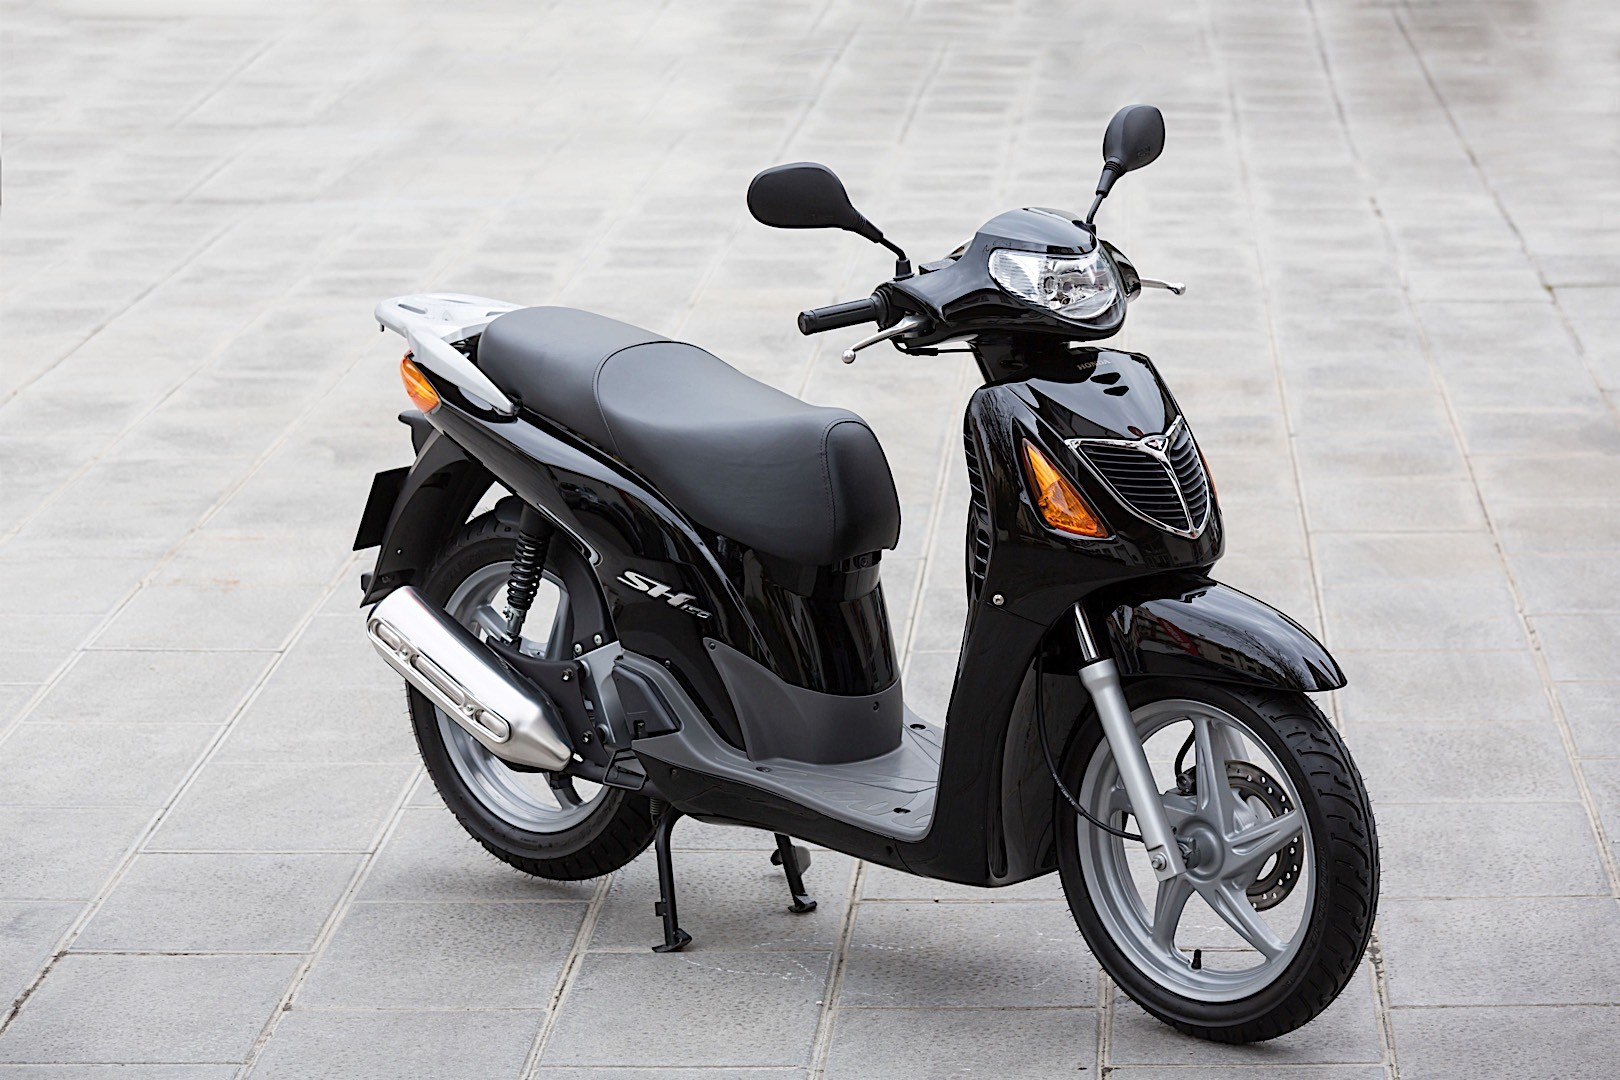 Honda Reaches 1 Million Scooters Made In Italy